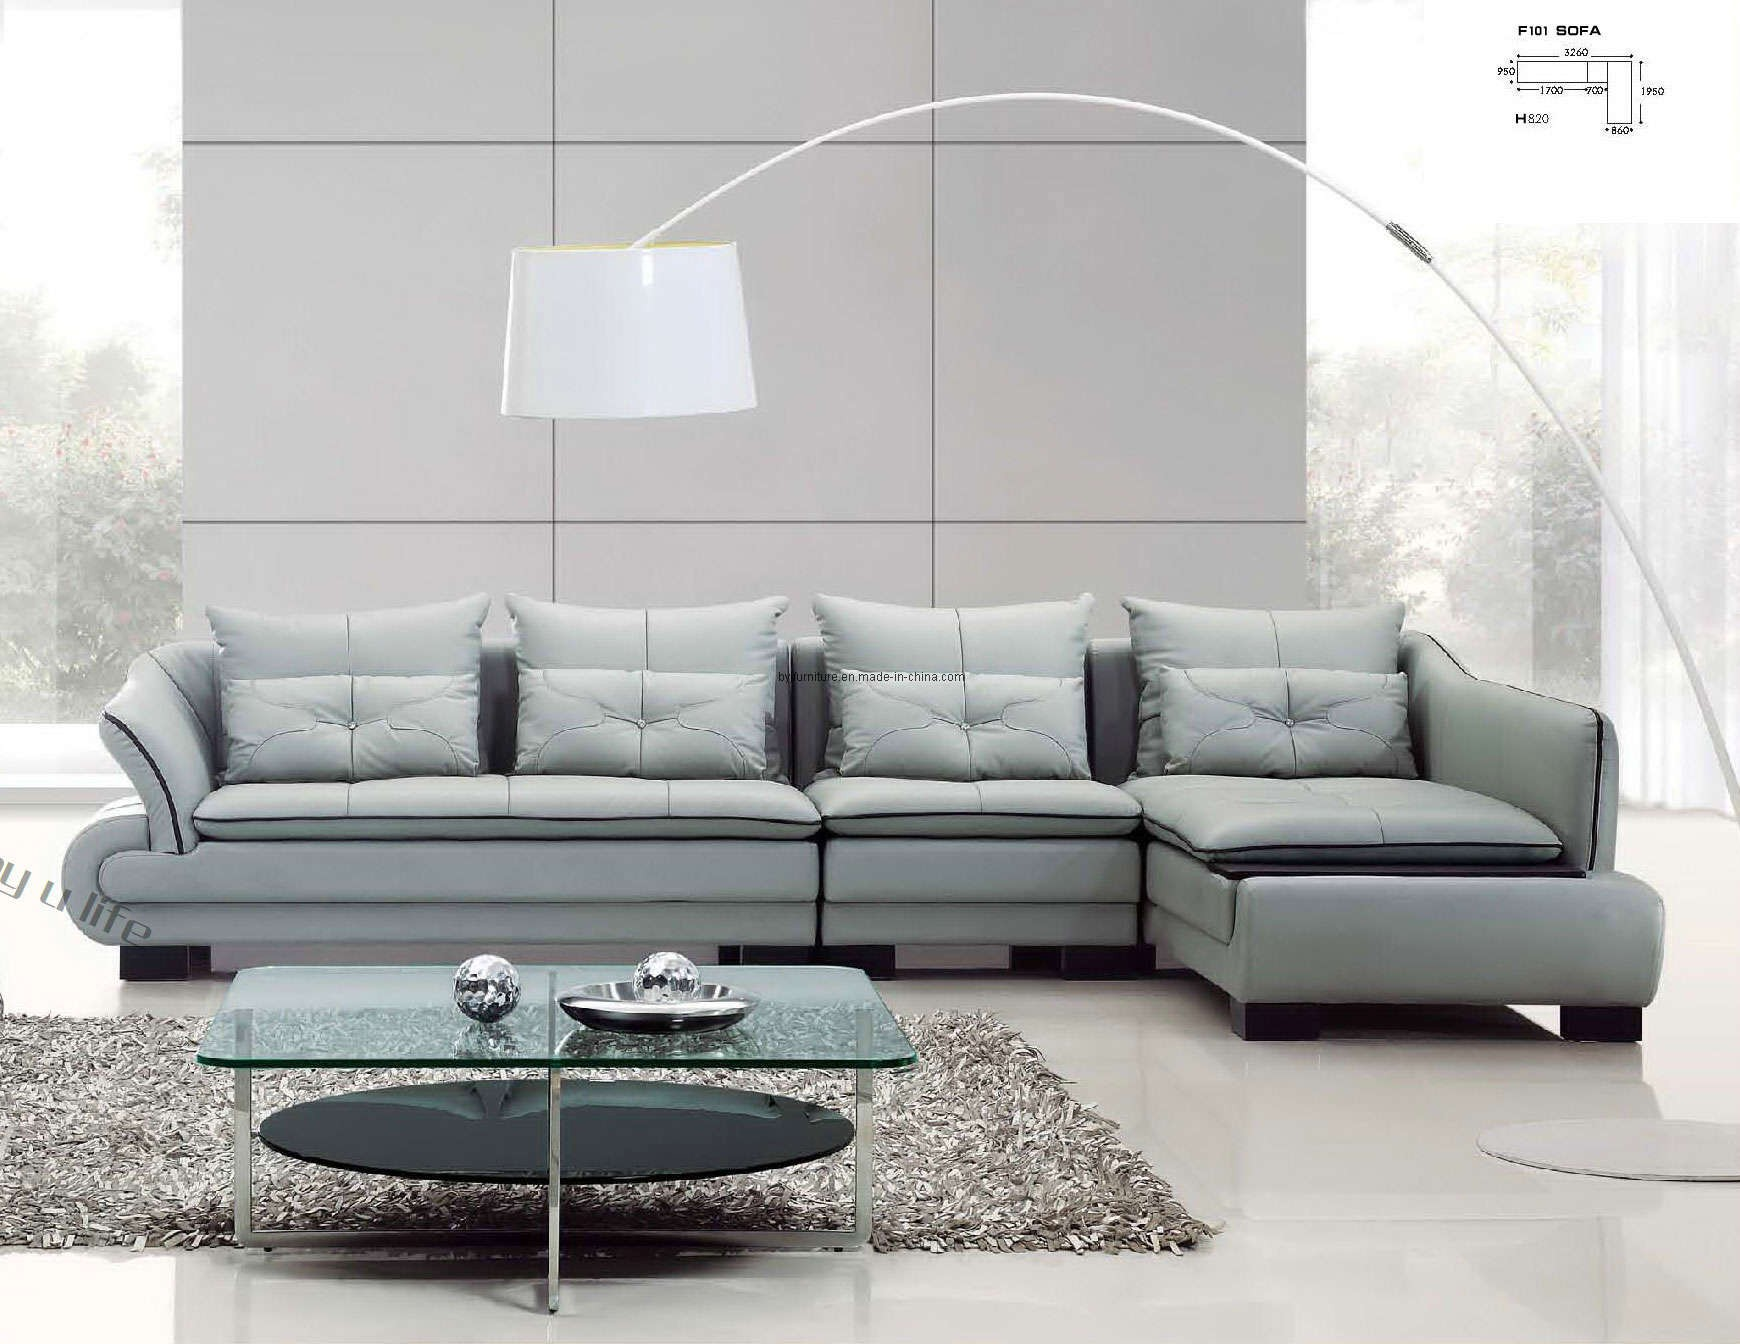 Leather Contemporary sofa Finest Latest sofa Set Designs for Living Room Furniture Ideas Hgnv Pattern